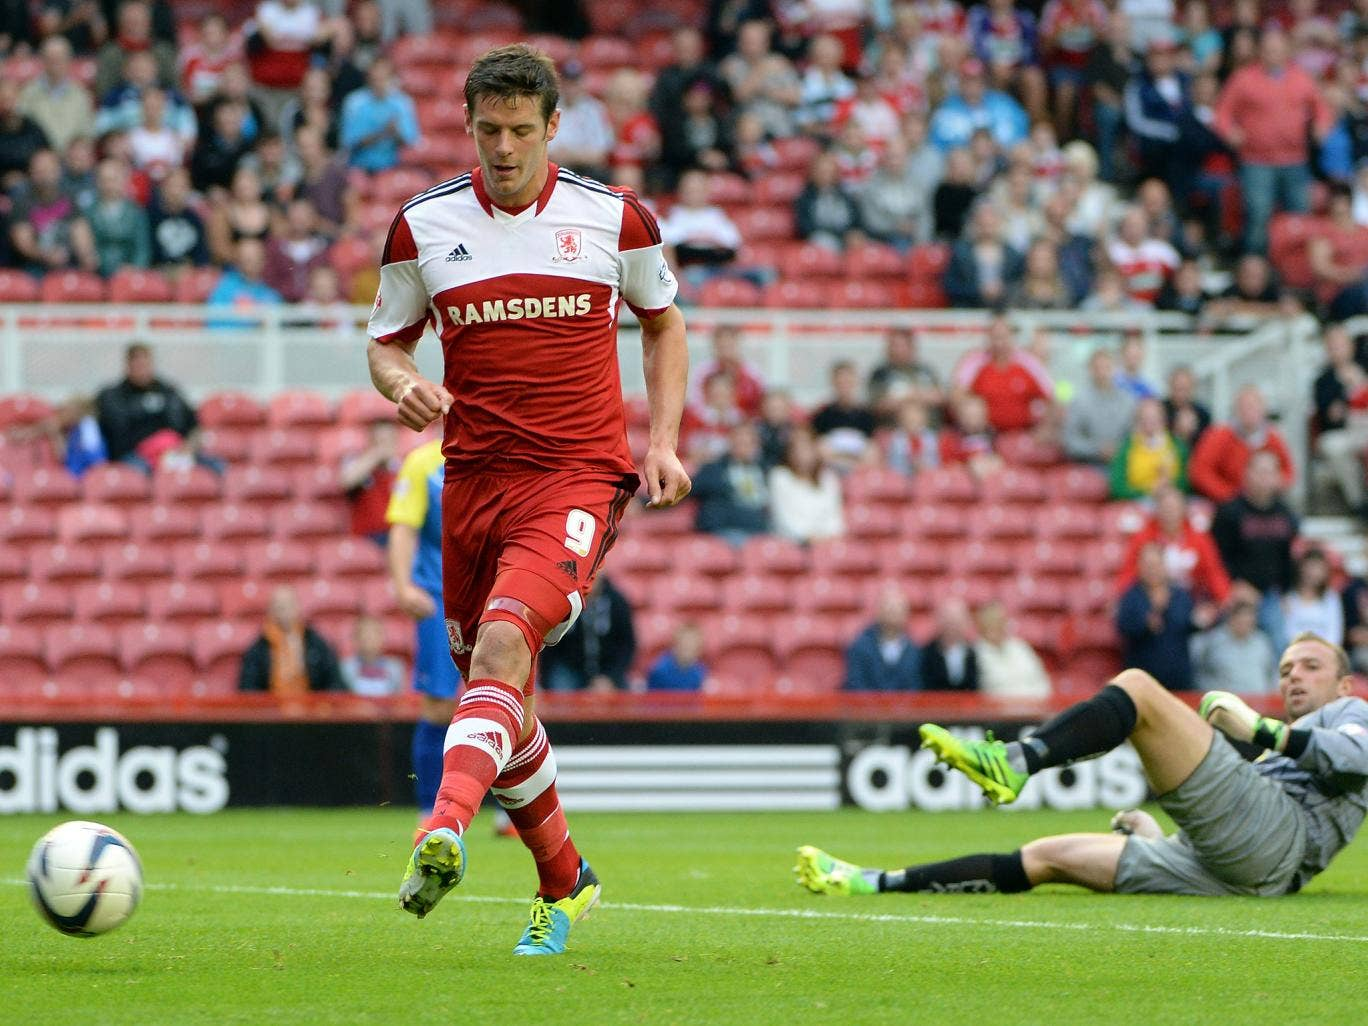 Jutkiewicz in action for Middlesbrough